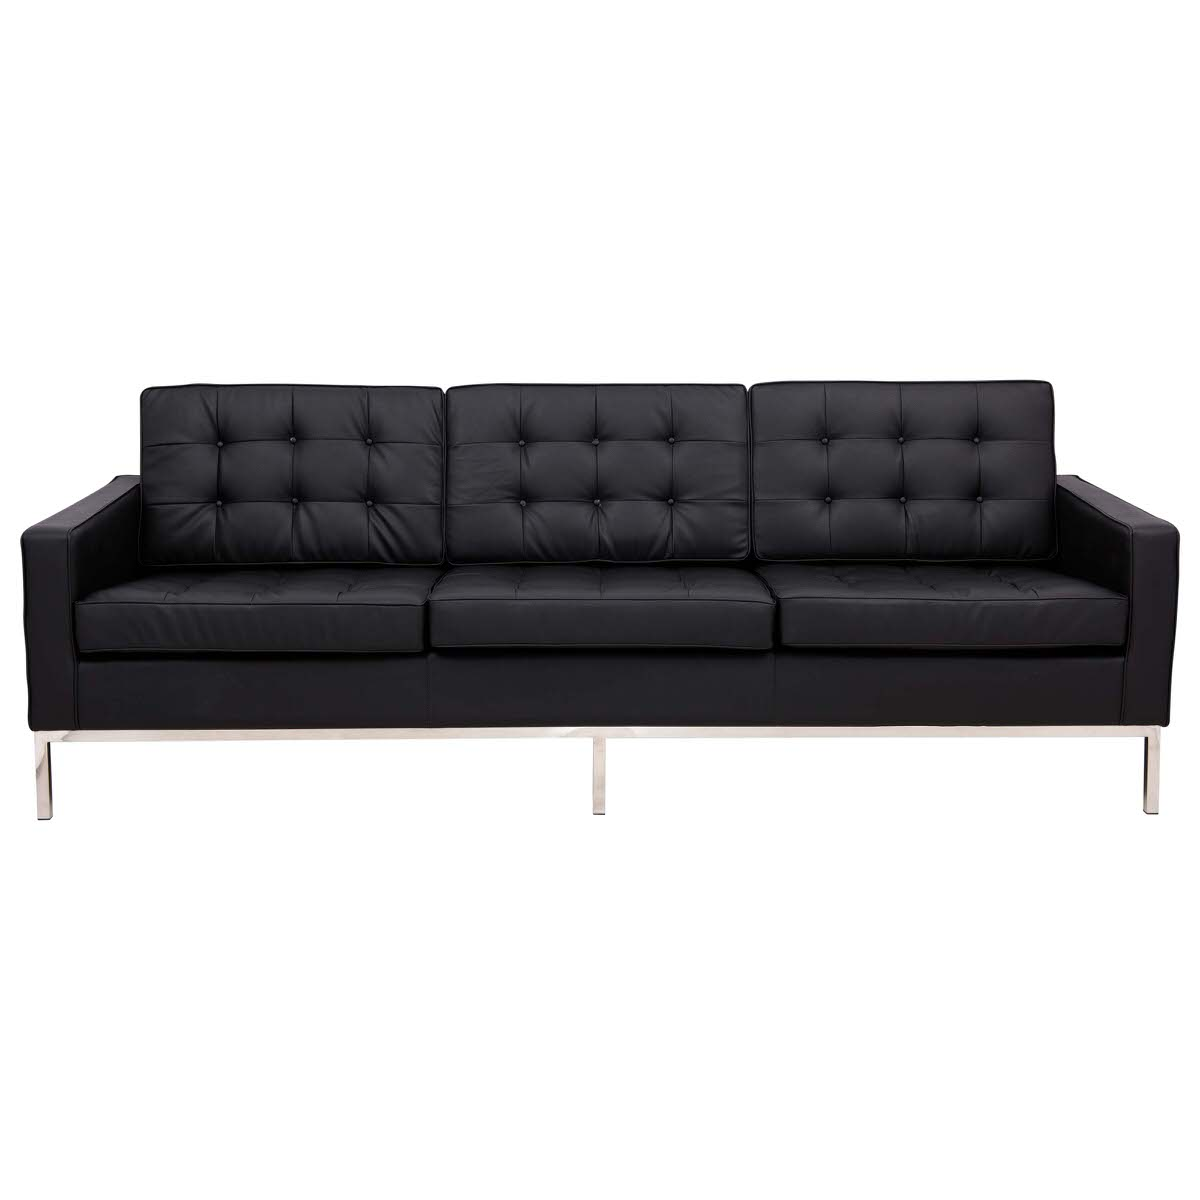 Florence Style Modern Black Leather Sofa by LeisureMod